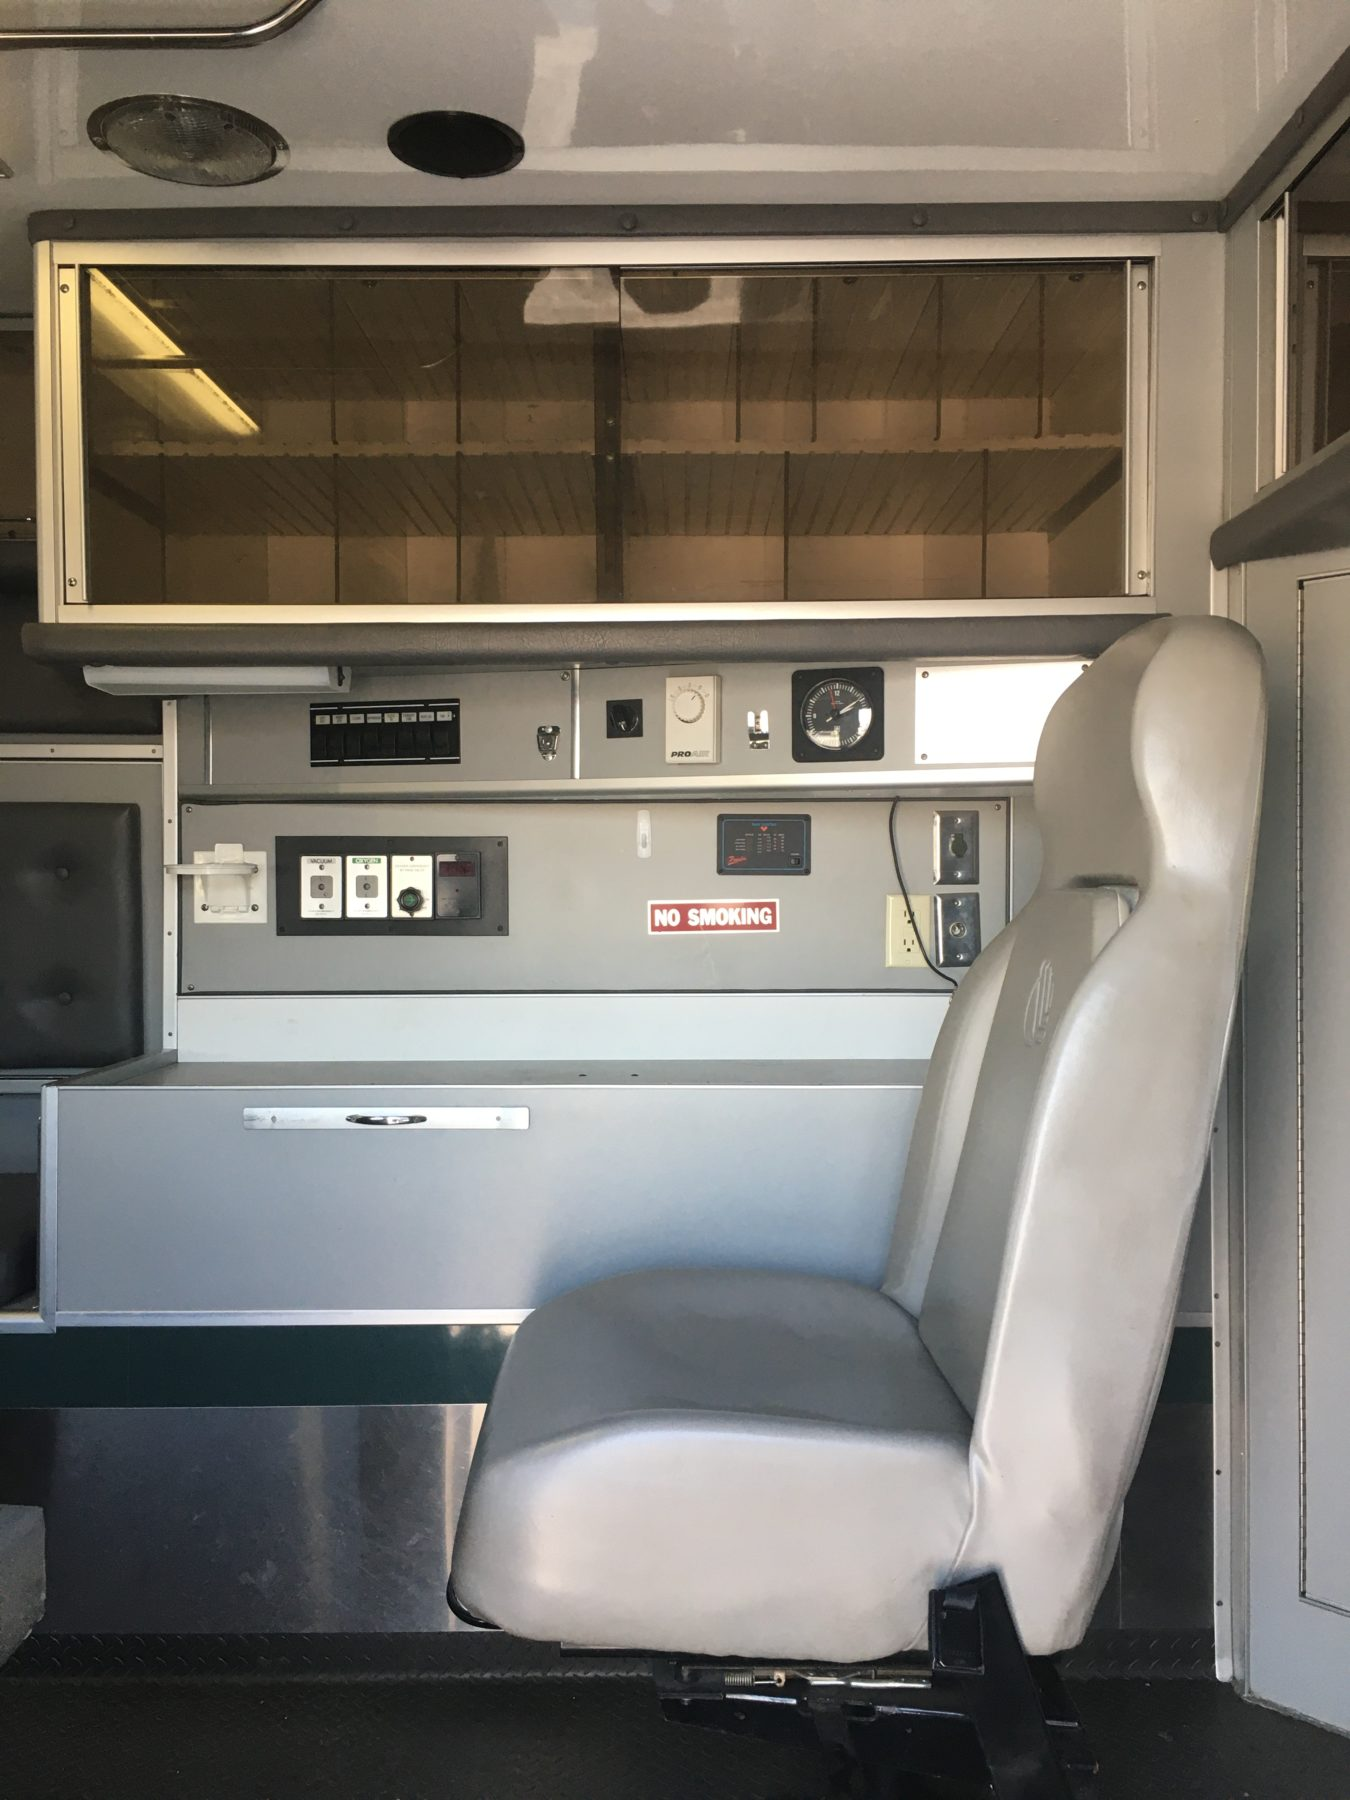 2008 International 4400 Heavy Duty Ambulance For Sale – Picture 4